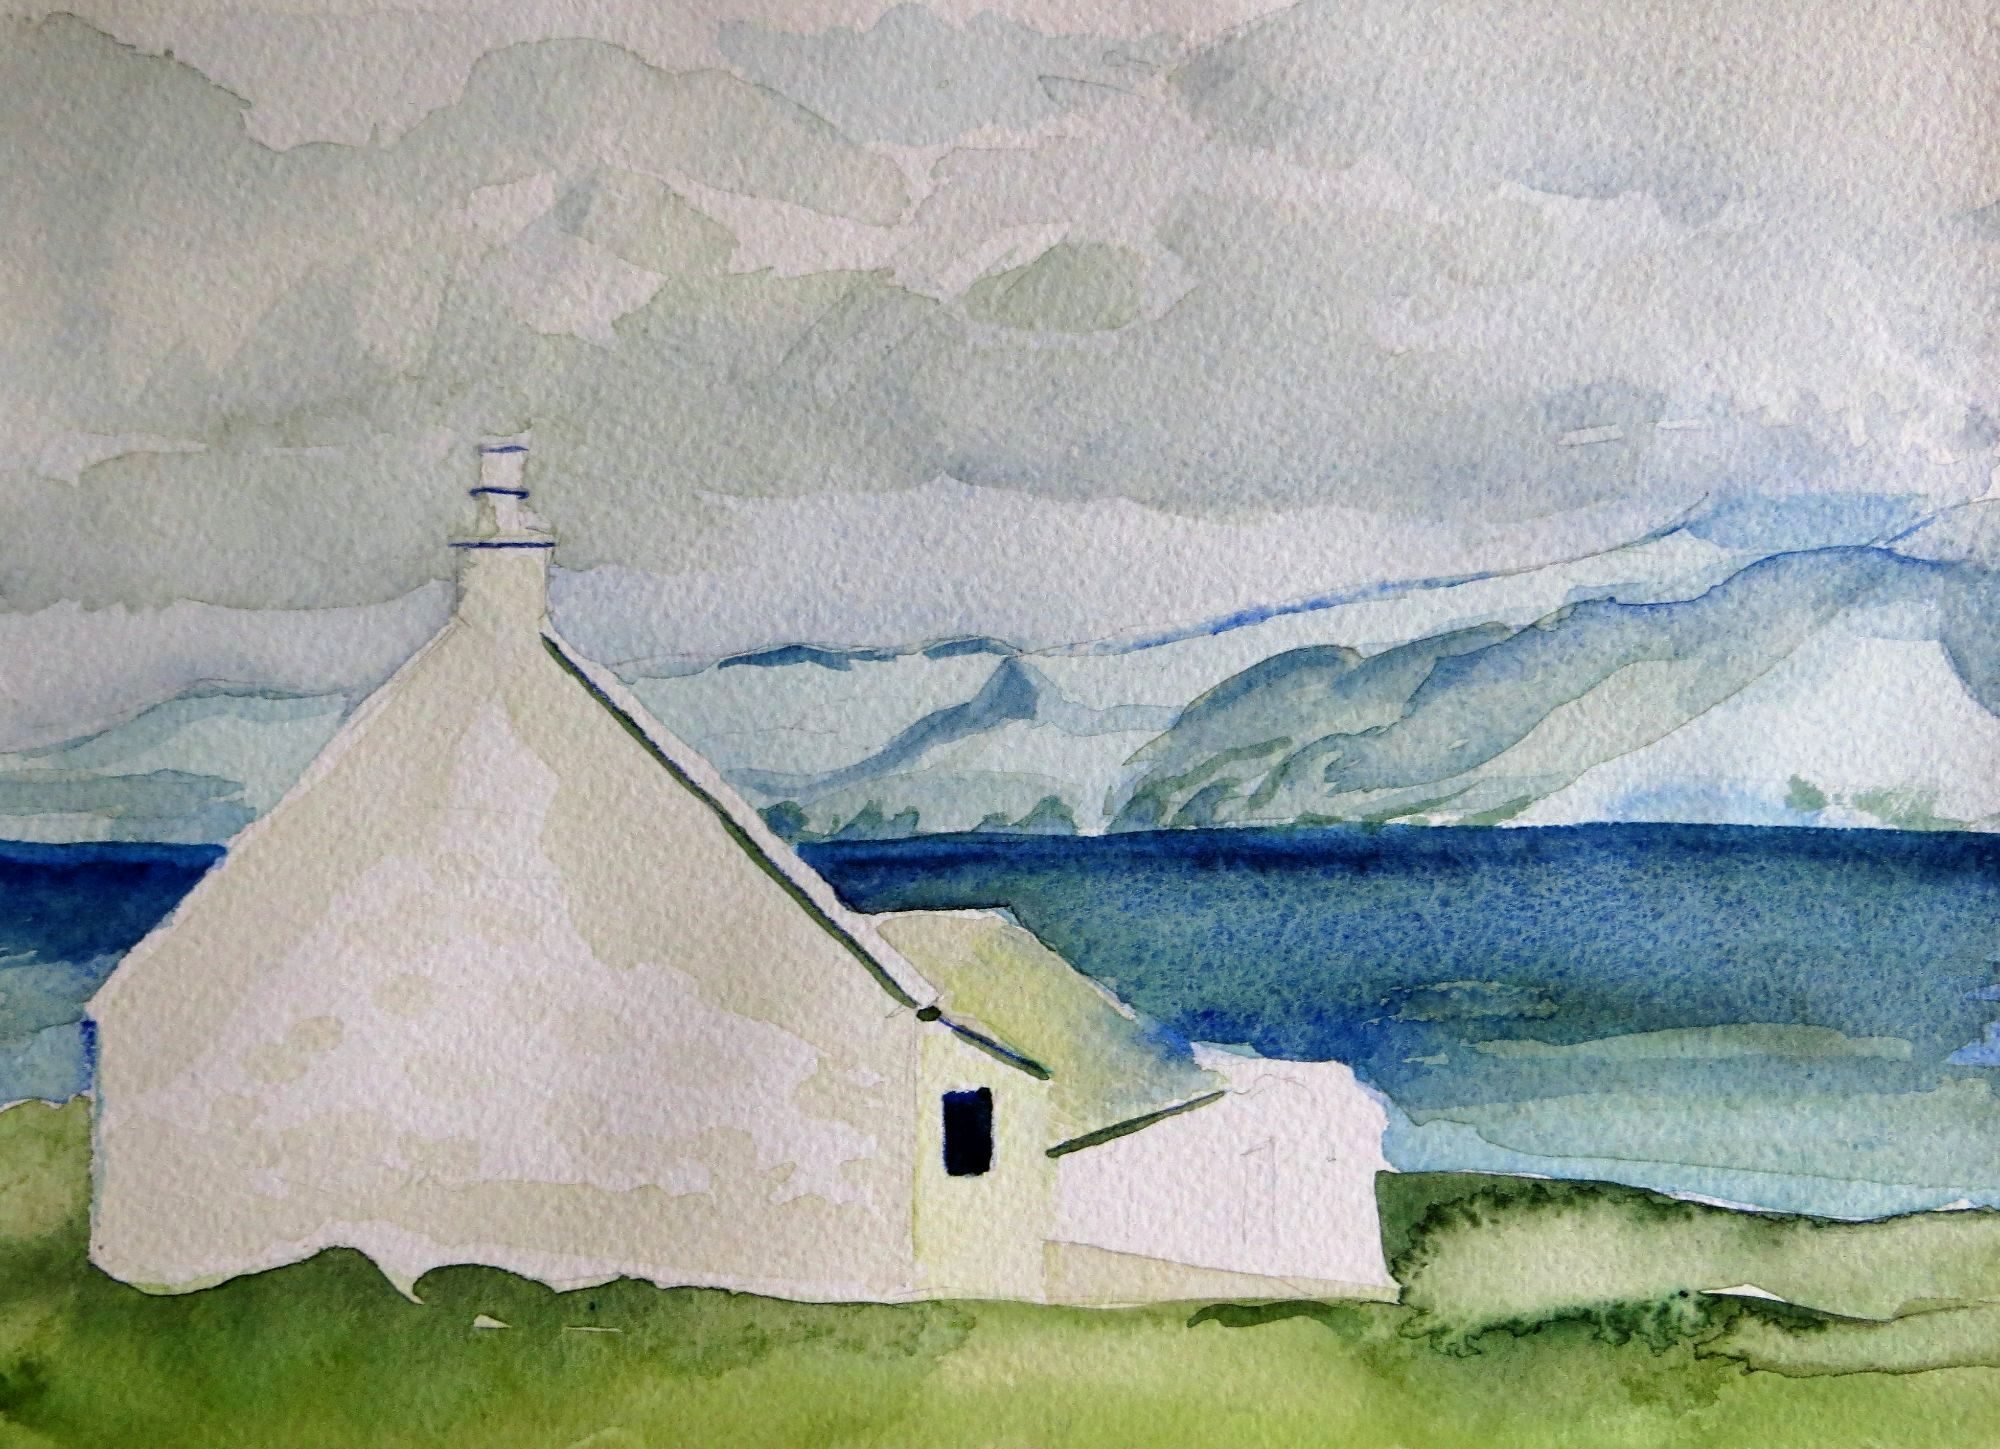 watercolour 2, Iona looking to Mull, 2000